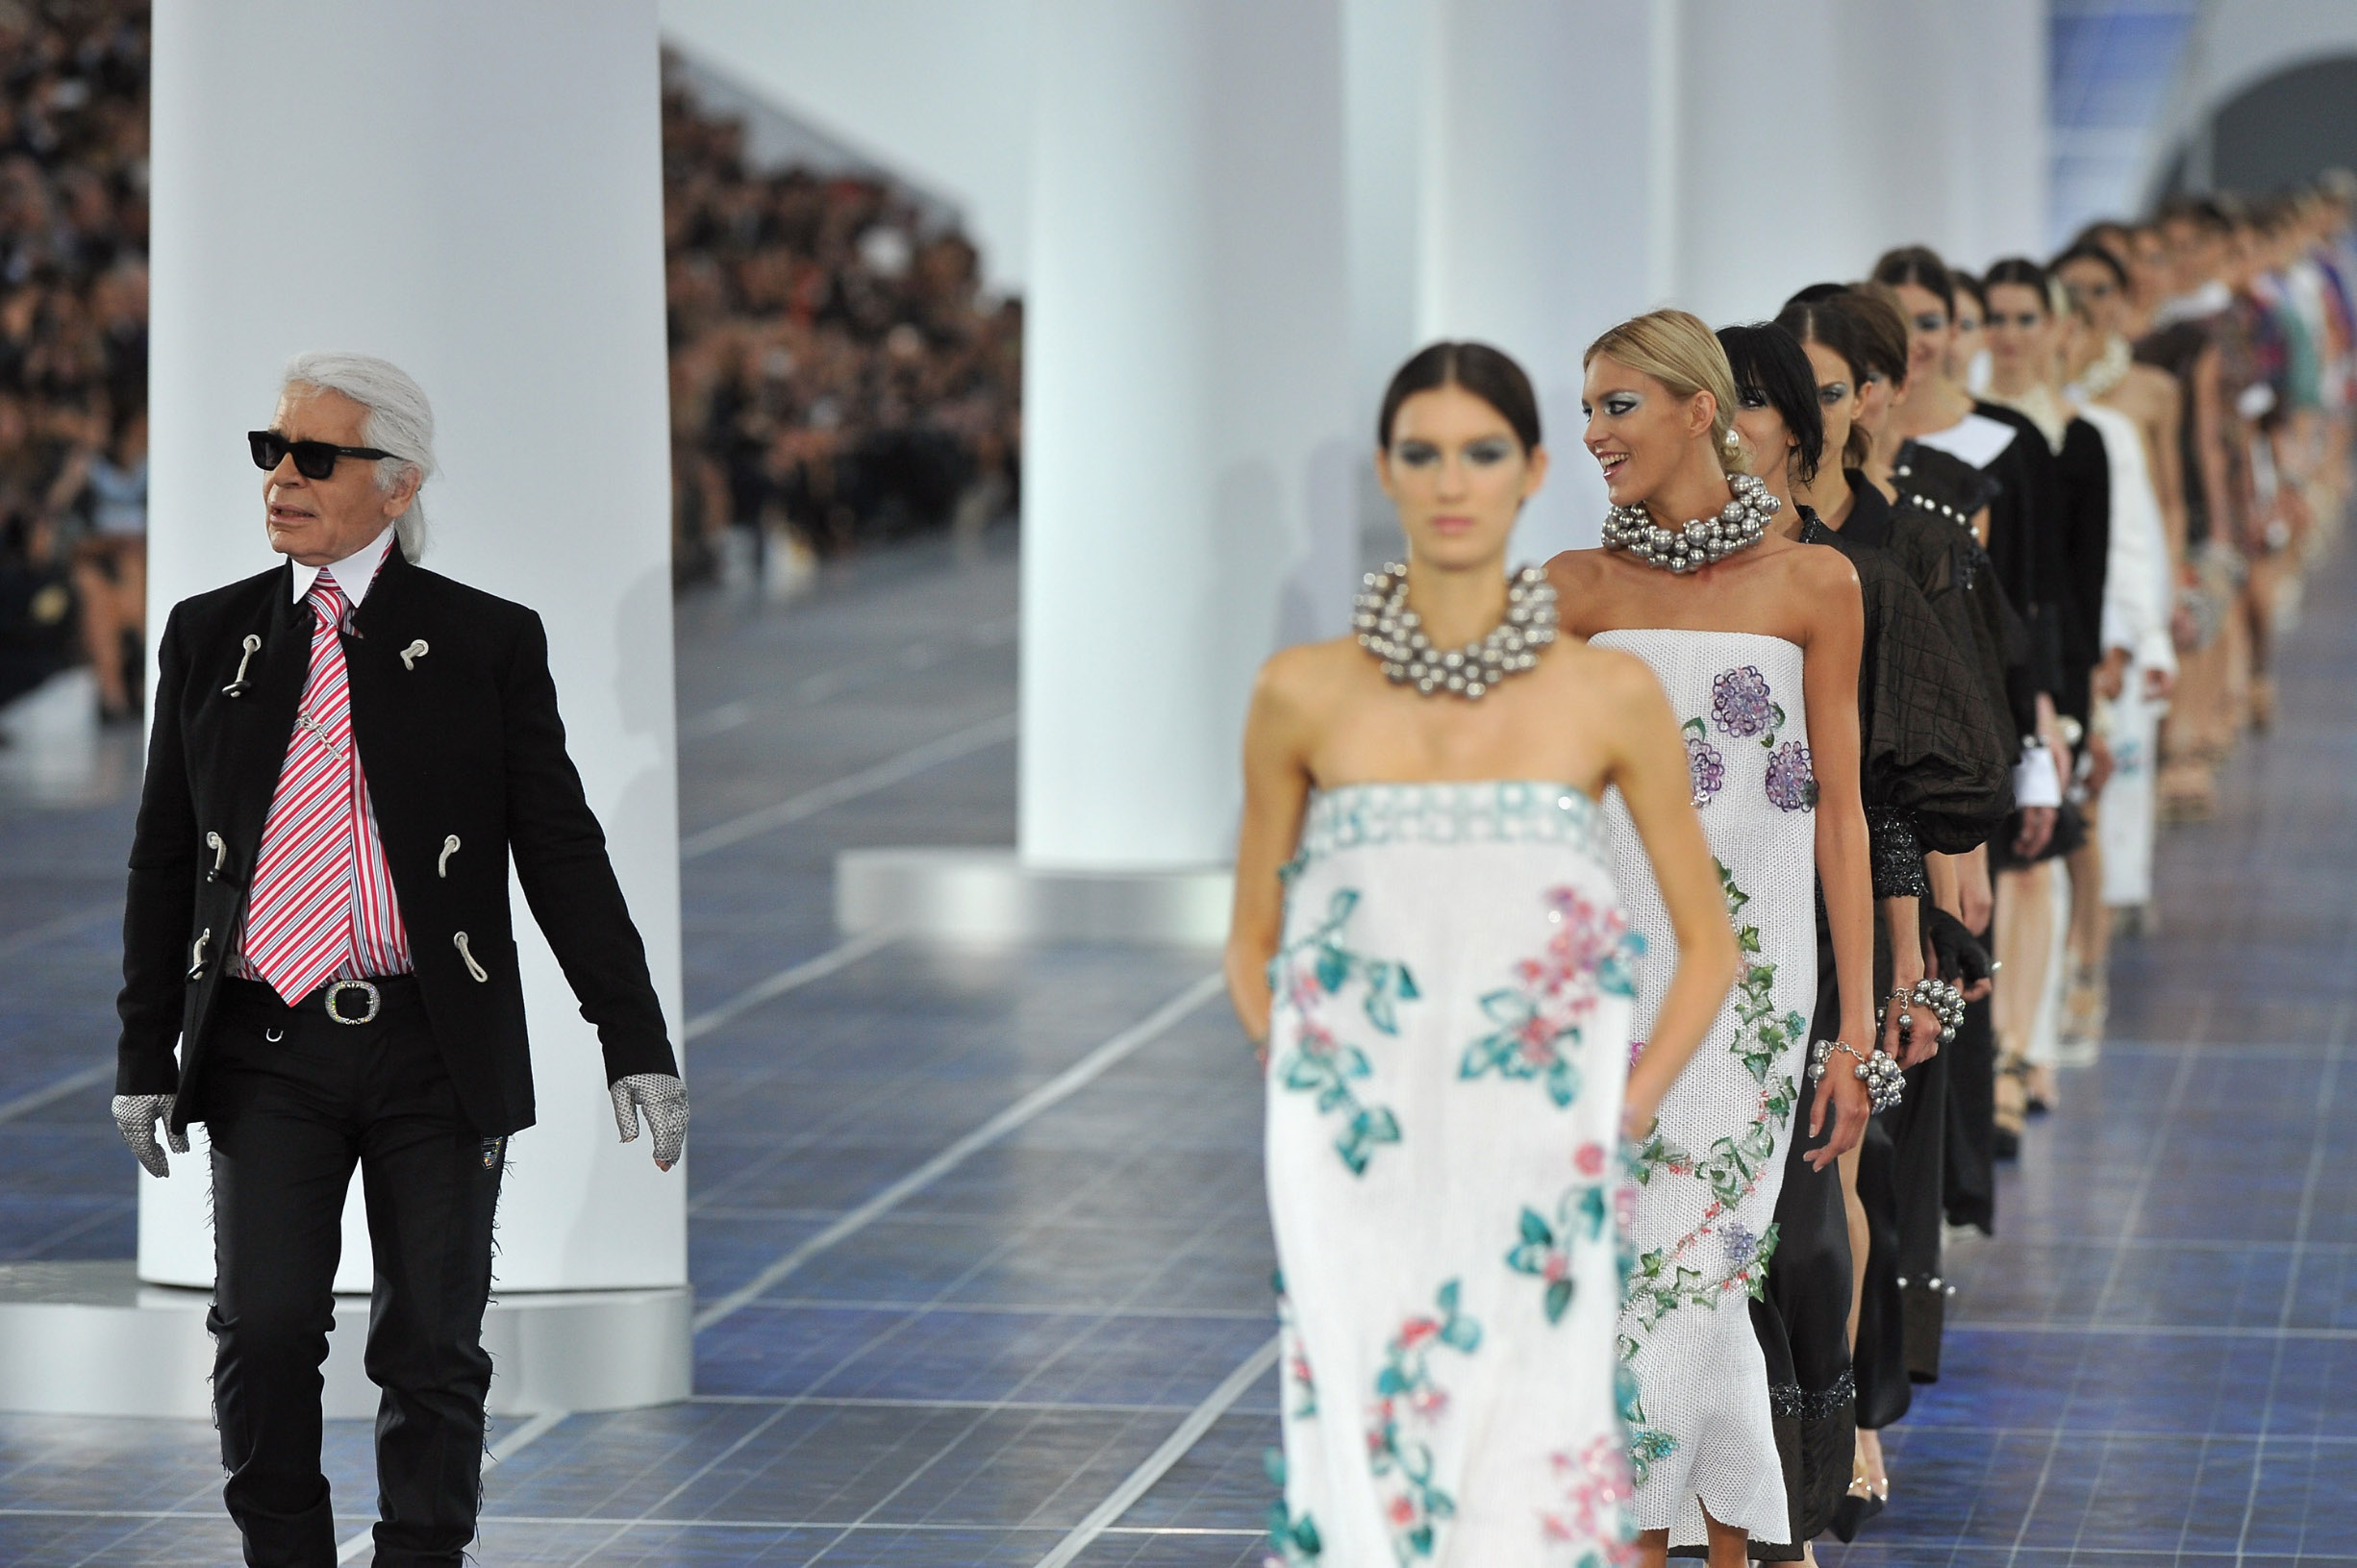 PARIS, FRANCE - OCTOBER 02: Karl Lagerfeld (L) walks the runway with the Chanel models during the Chanel Spring / Summer 2013 show as part of Paris Fashion Week at Grand Palais on October 2, 2012 in Paris, France.  (Photo by Pascal Le Segretain/Getty Images)